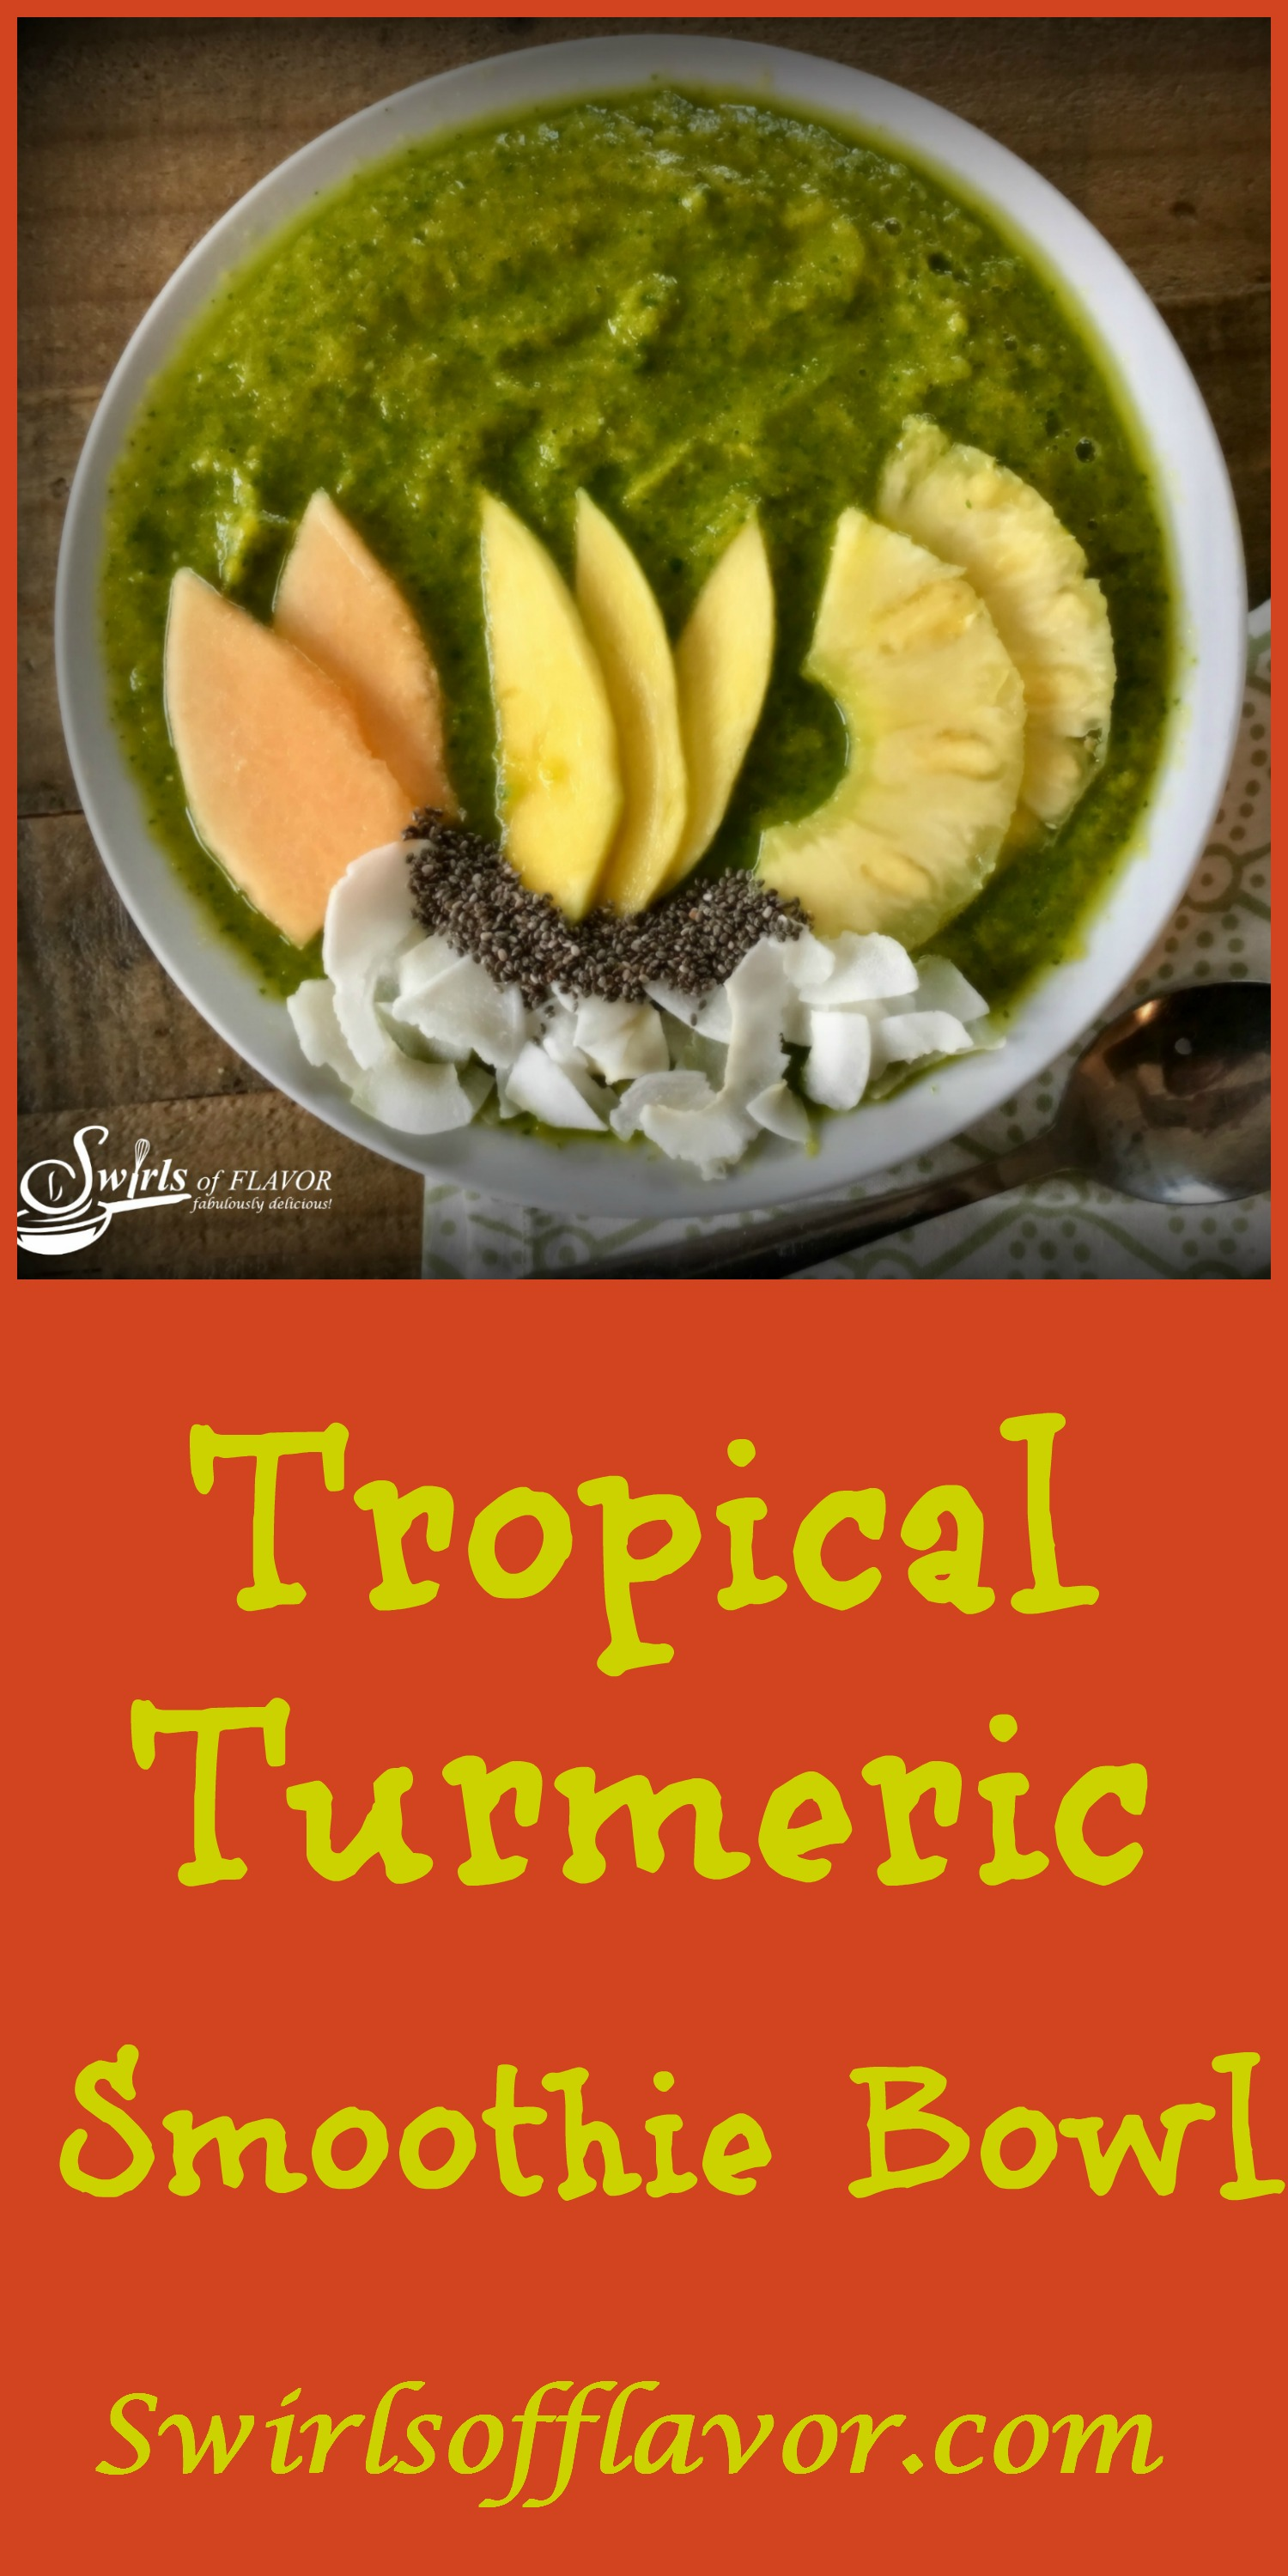 Tropical Turmeric Smoothie Bowl combines turmeric, greens and chia seeds along with fabulous tropical fruits for a healthy delicious smoothie bowl that's on trend! smoothie | smoothie bowl | chia seeds | turmeric | green smoothie | mango | pineapple | cantaloupe | breakfast | snacks | #swirlsofflavor